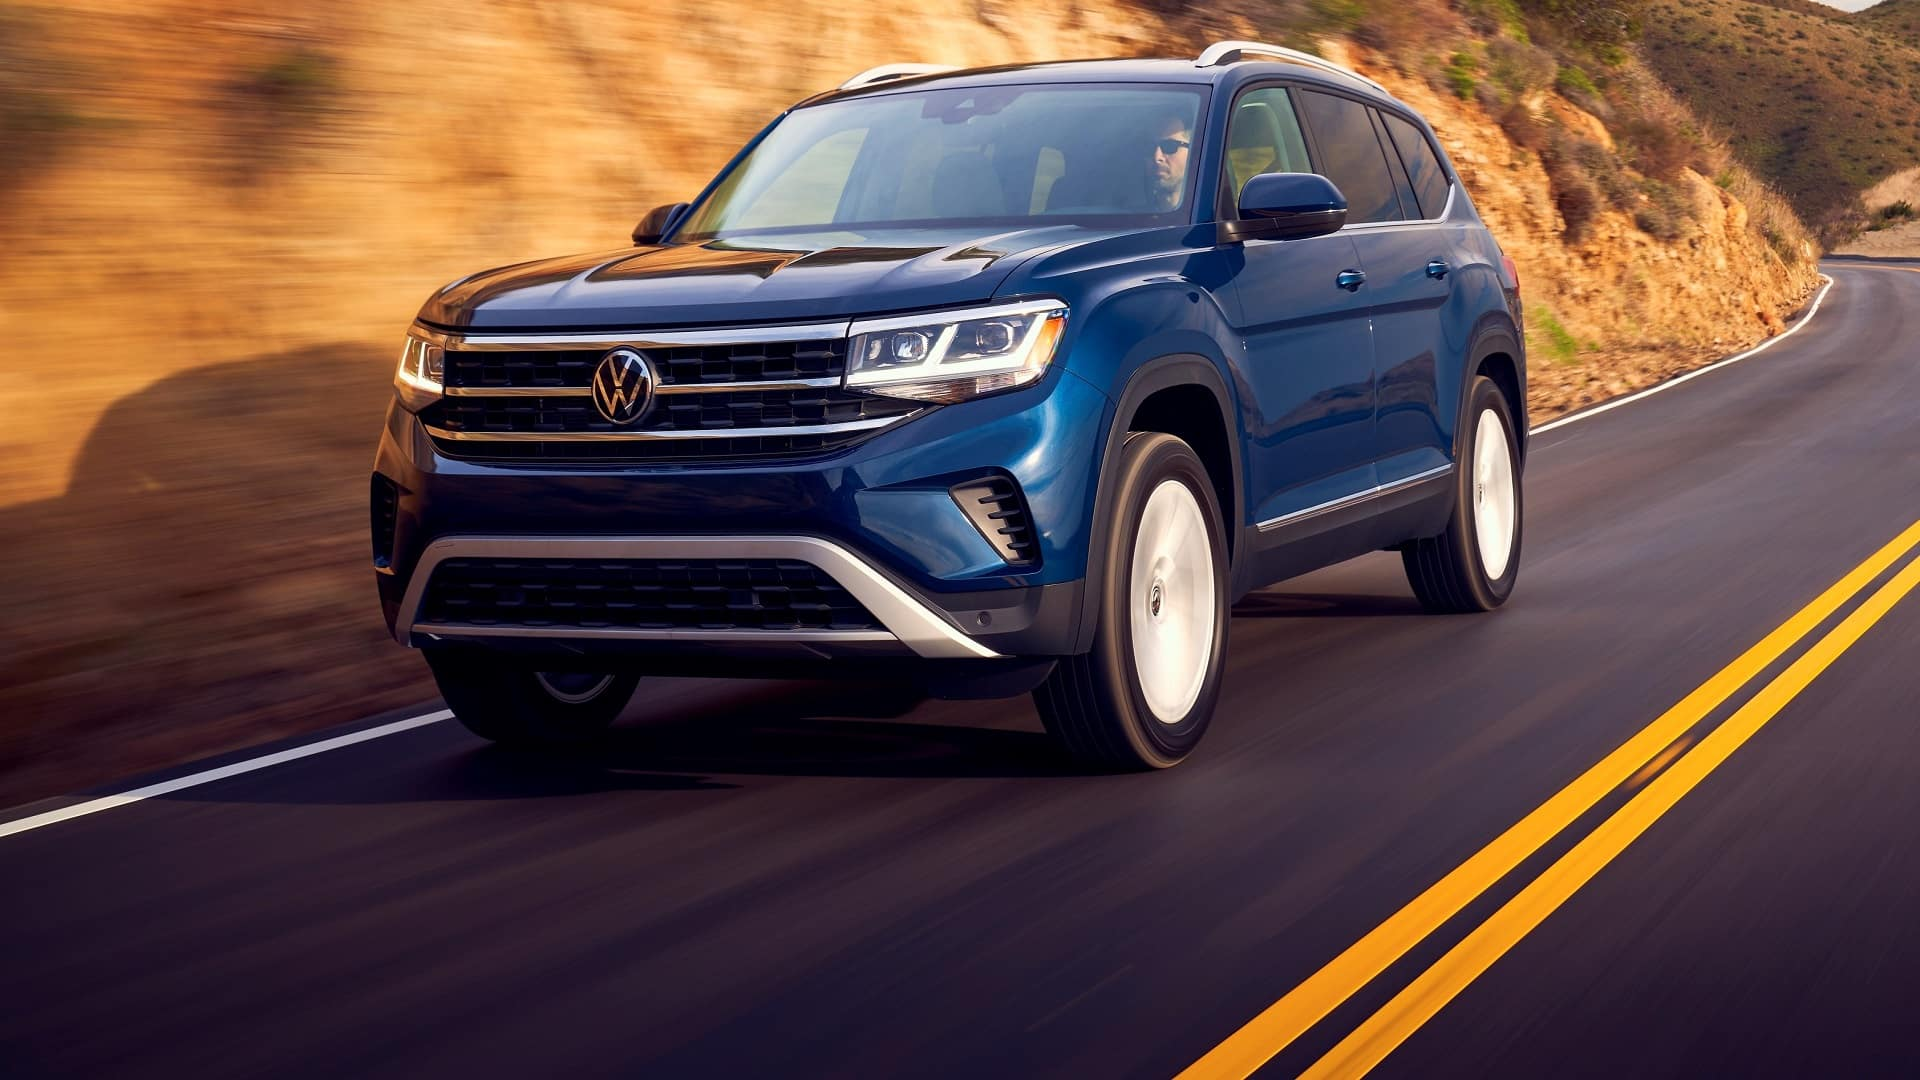 2021 Volkswagen Atlas safety features image